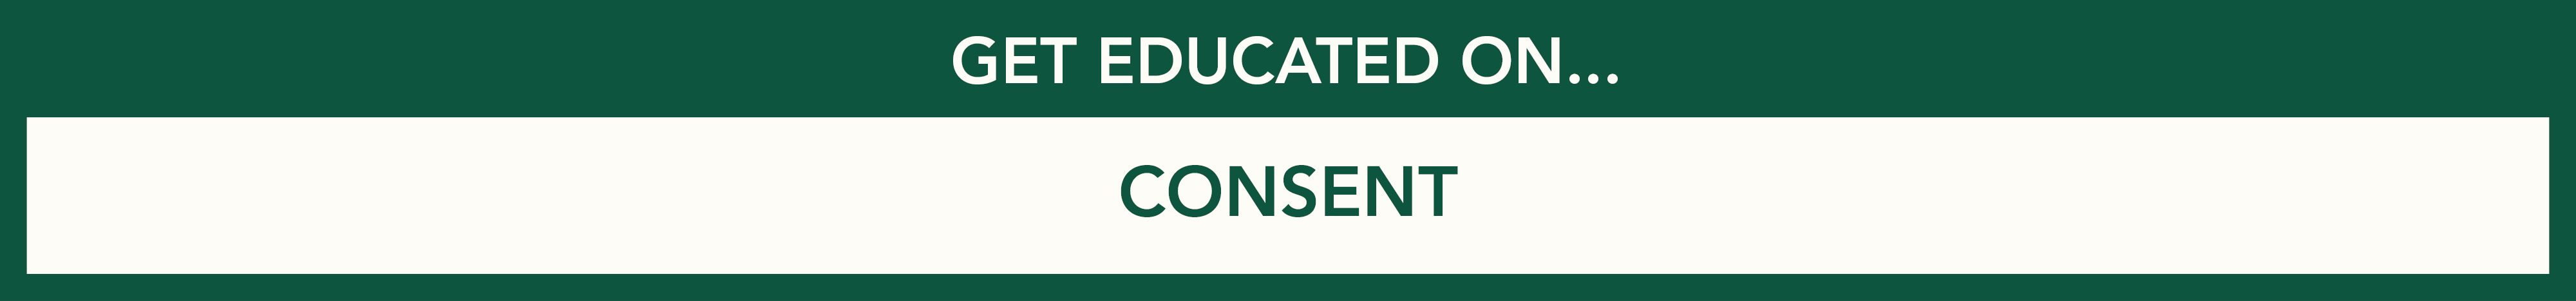 Get educated on consent